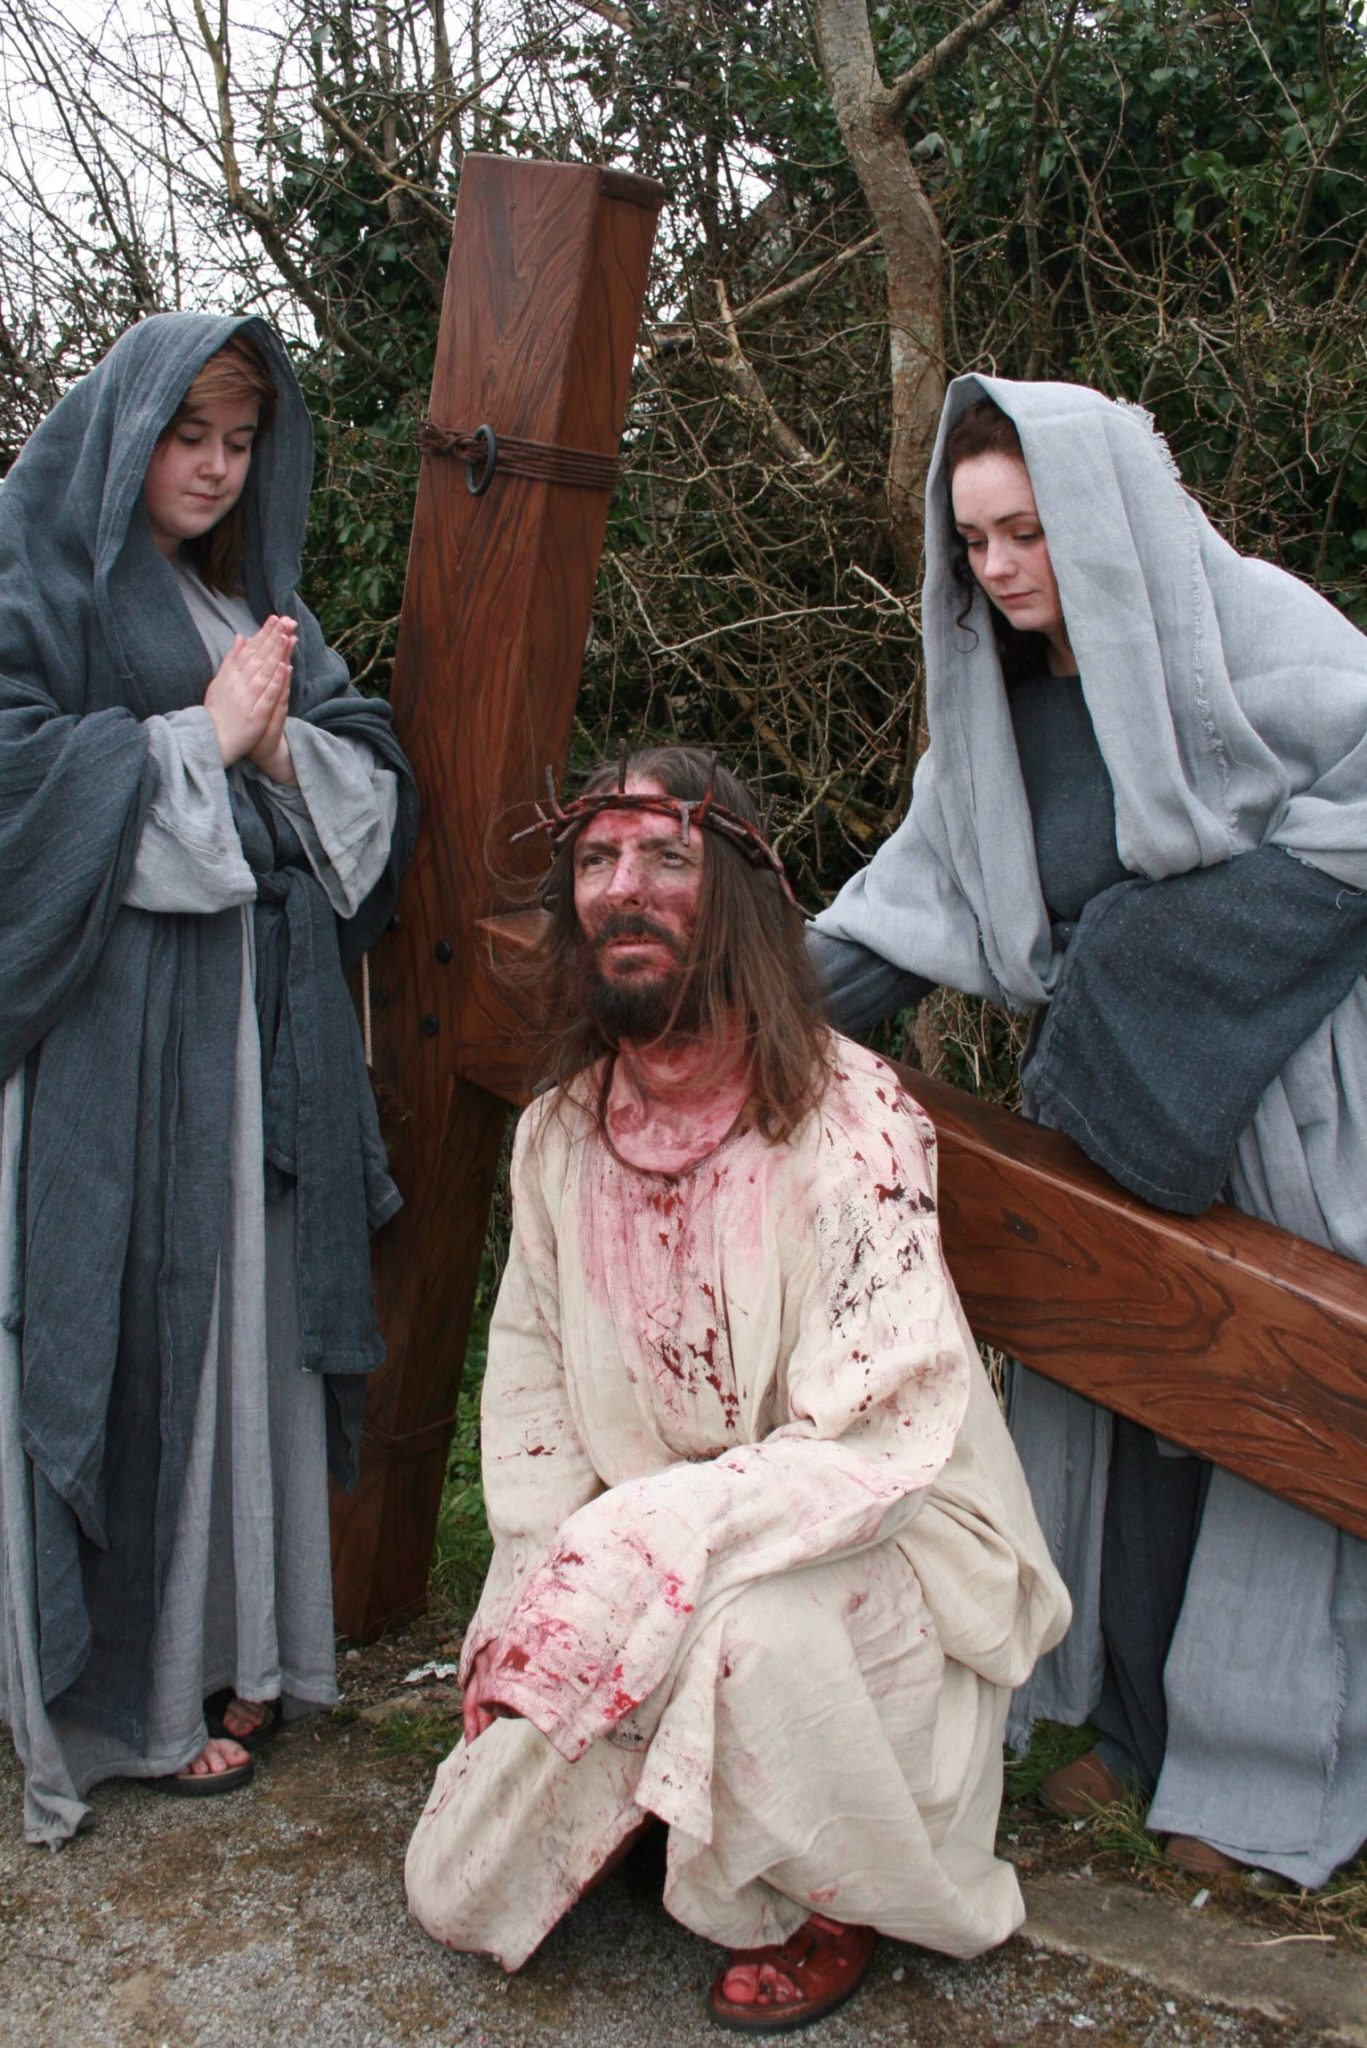 Mr Sean Shields and a team of 50 strong actors and backroom staff perform The Way of the Cross, with the Legion Ireland, the Roman Re-Enactment Society, Brian Smith as Jesus Christ